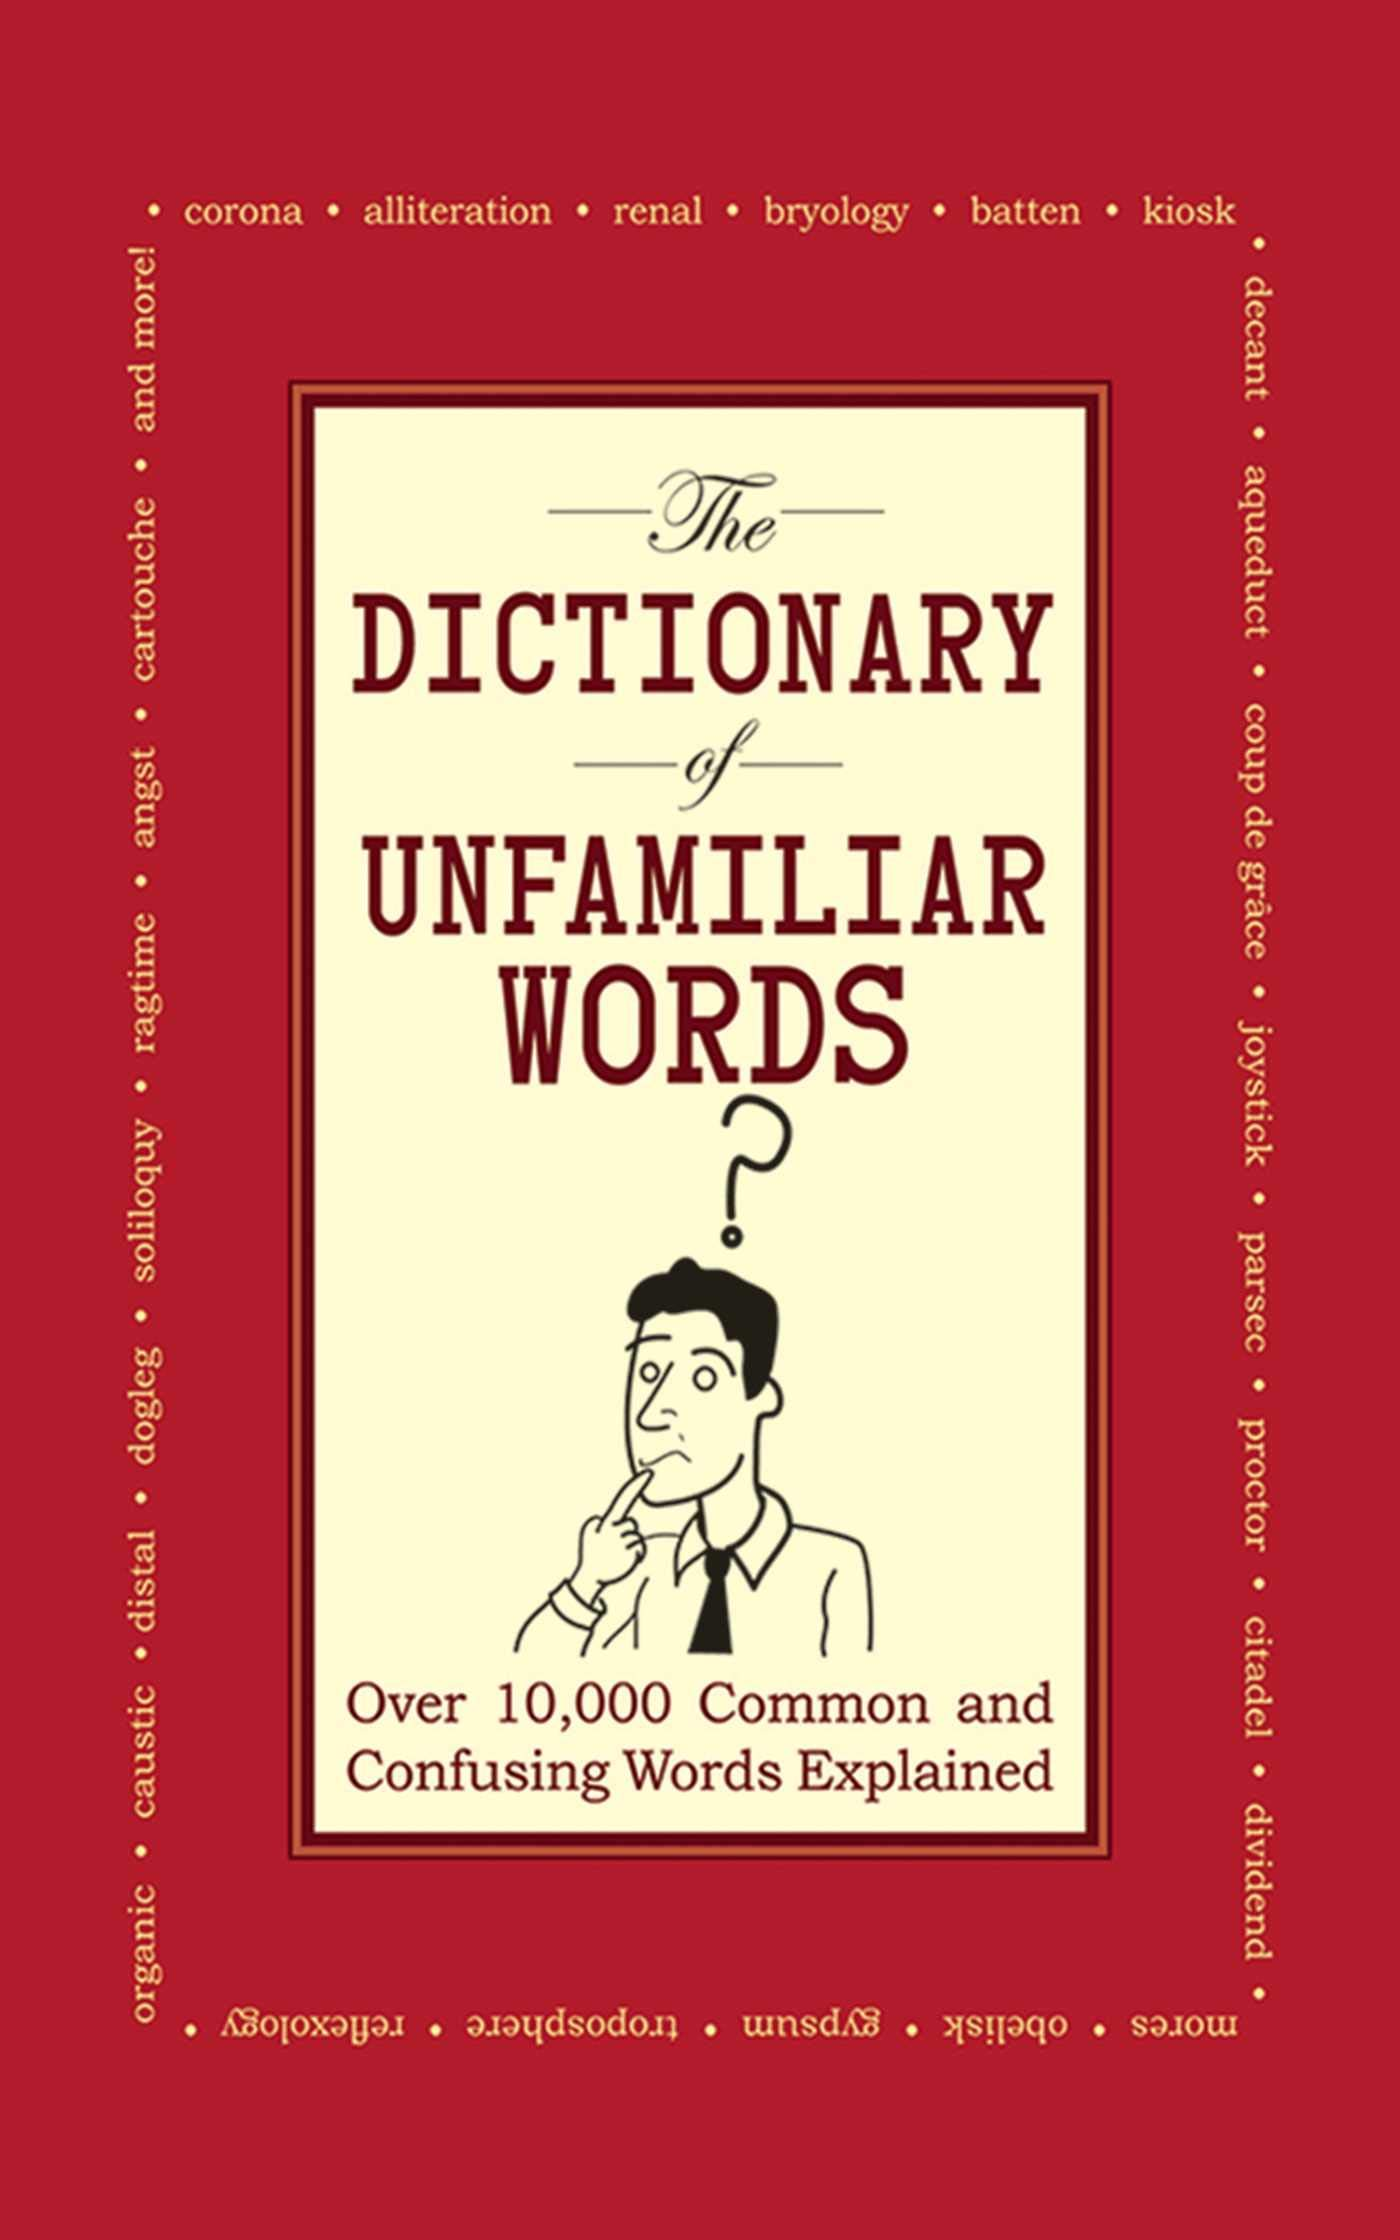 Amazon com: The Dictionary of Unfamiliar Words: Over 10,000